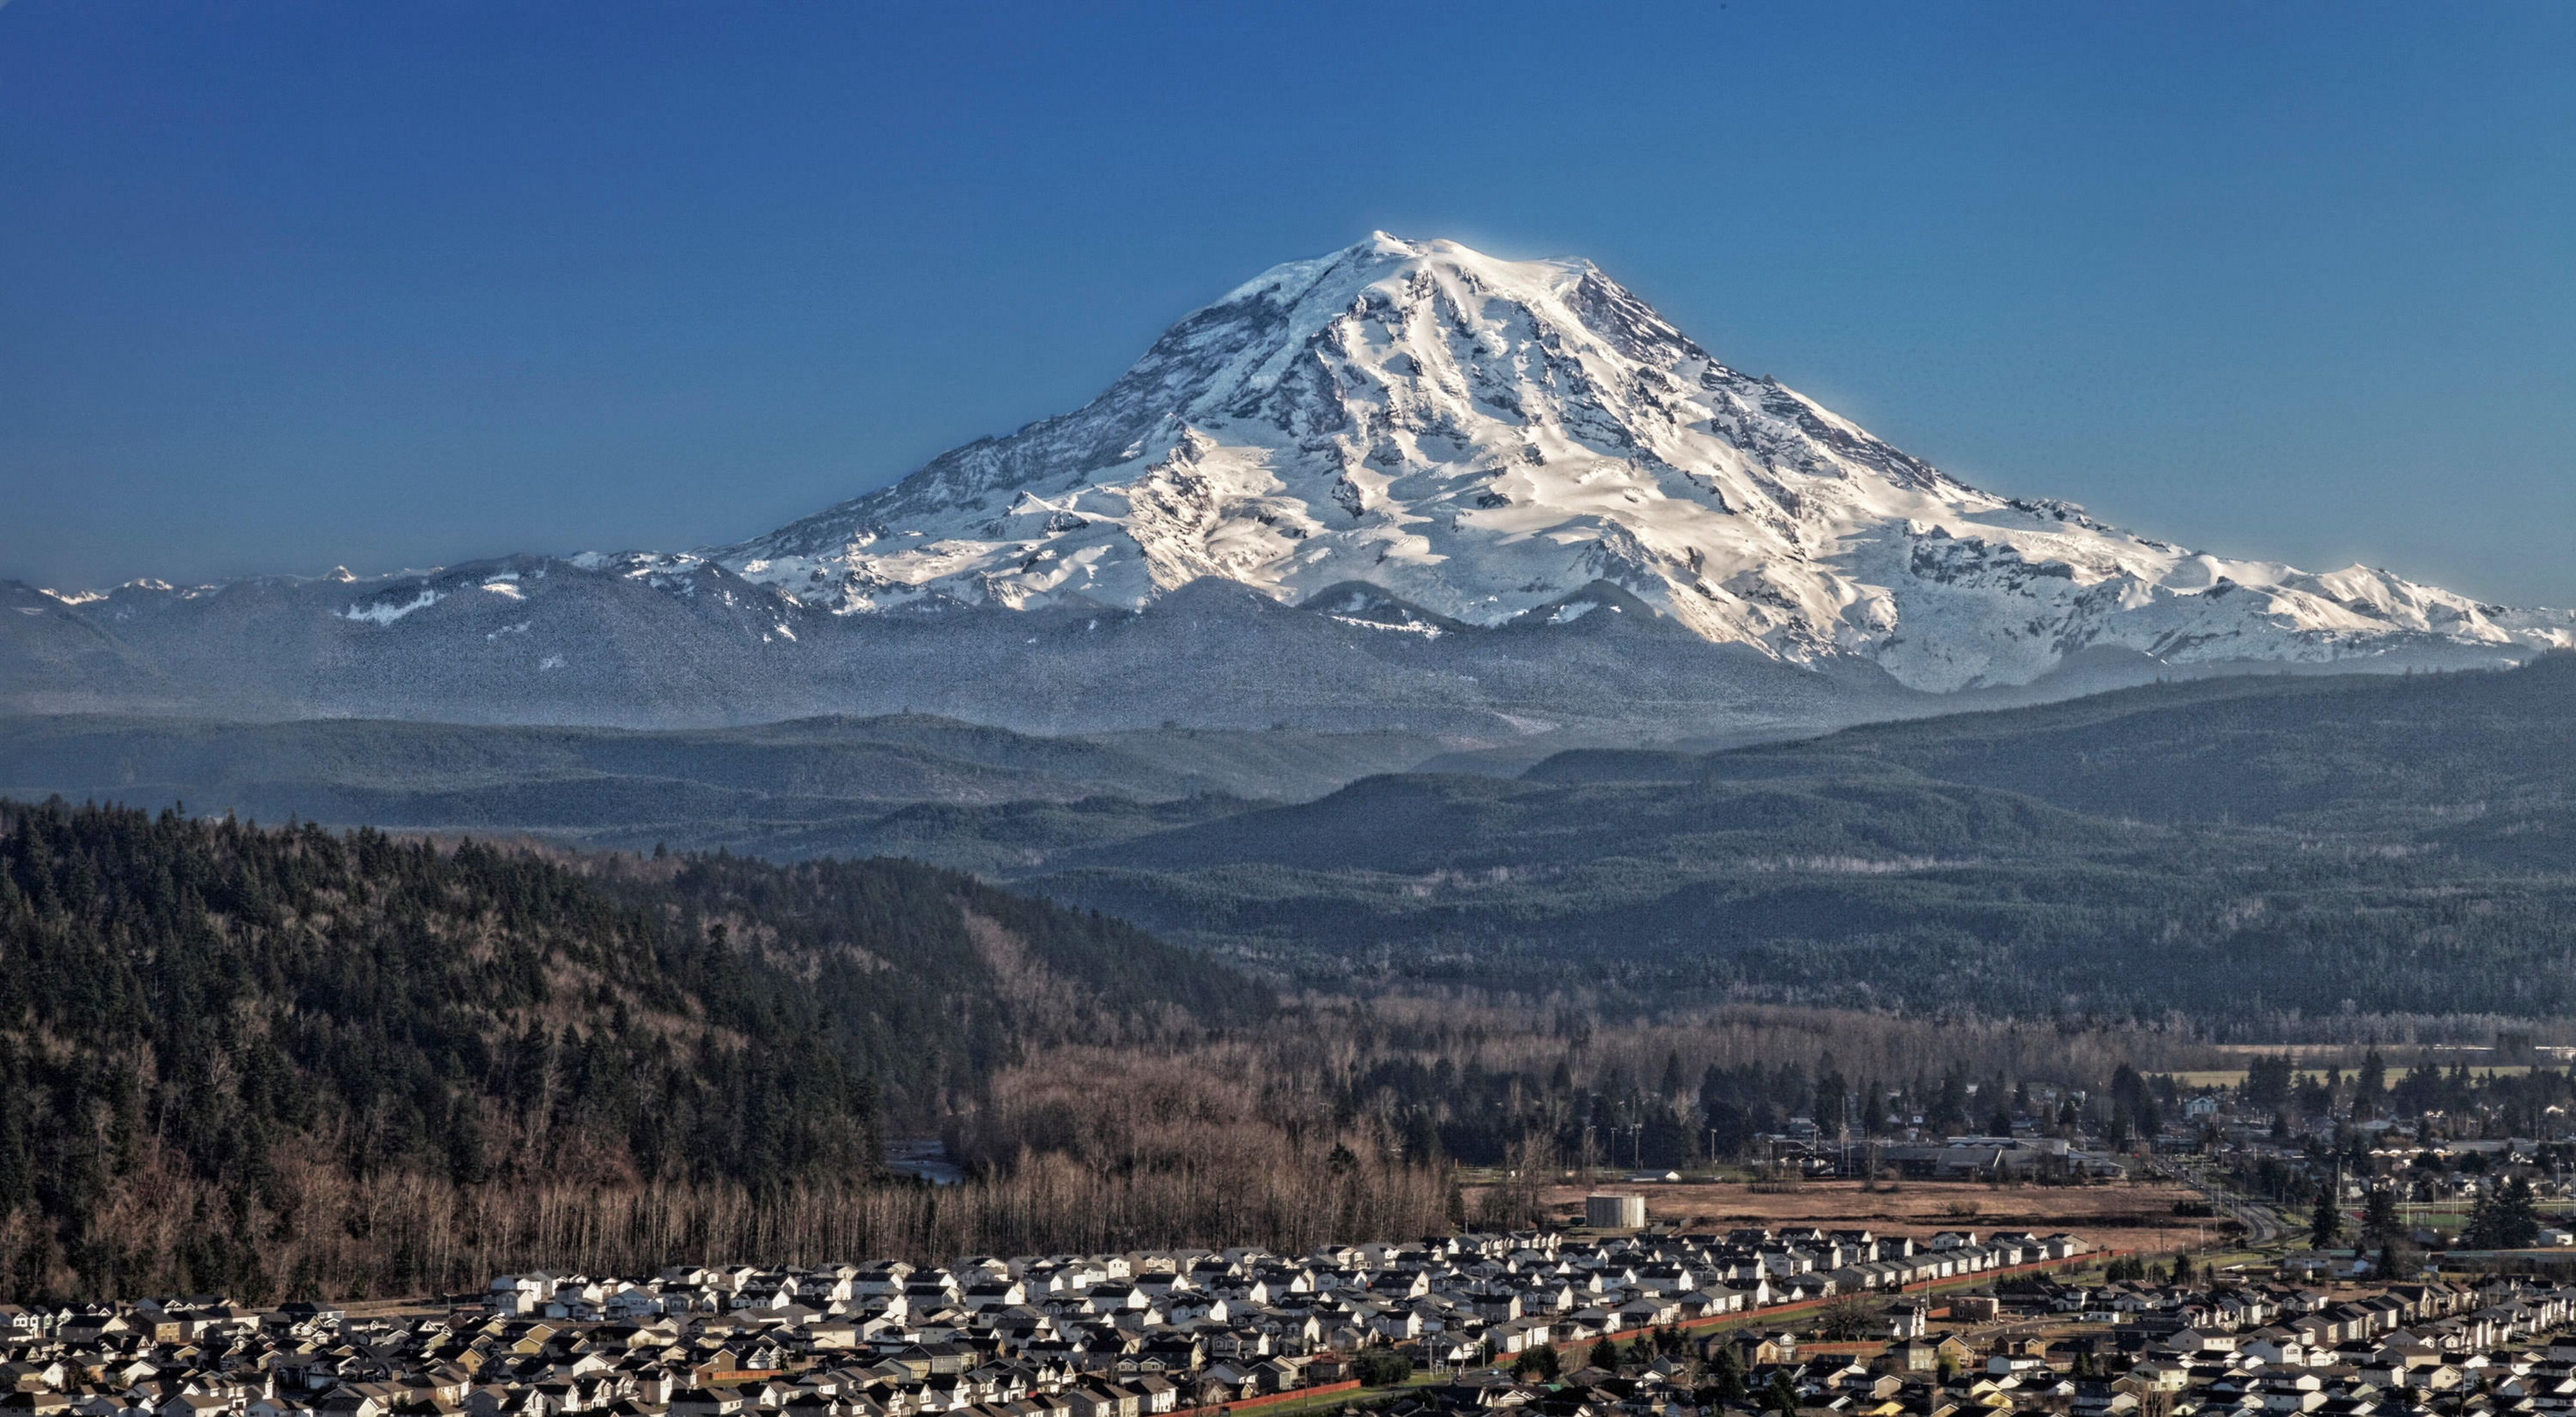 Mount Rainier looms over the Puyallup Valley, Washington.